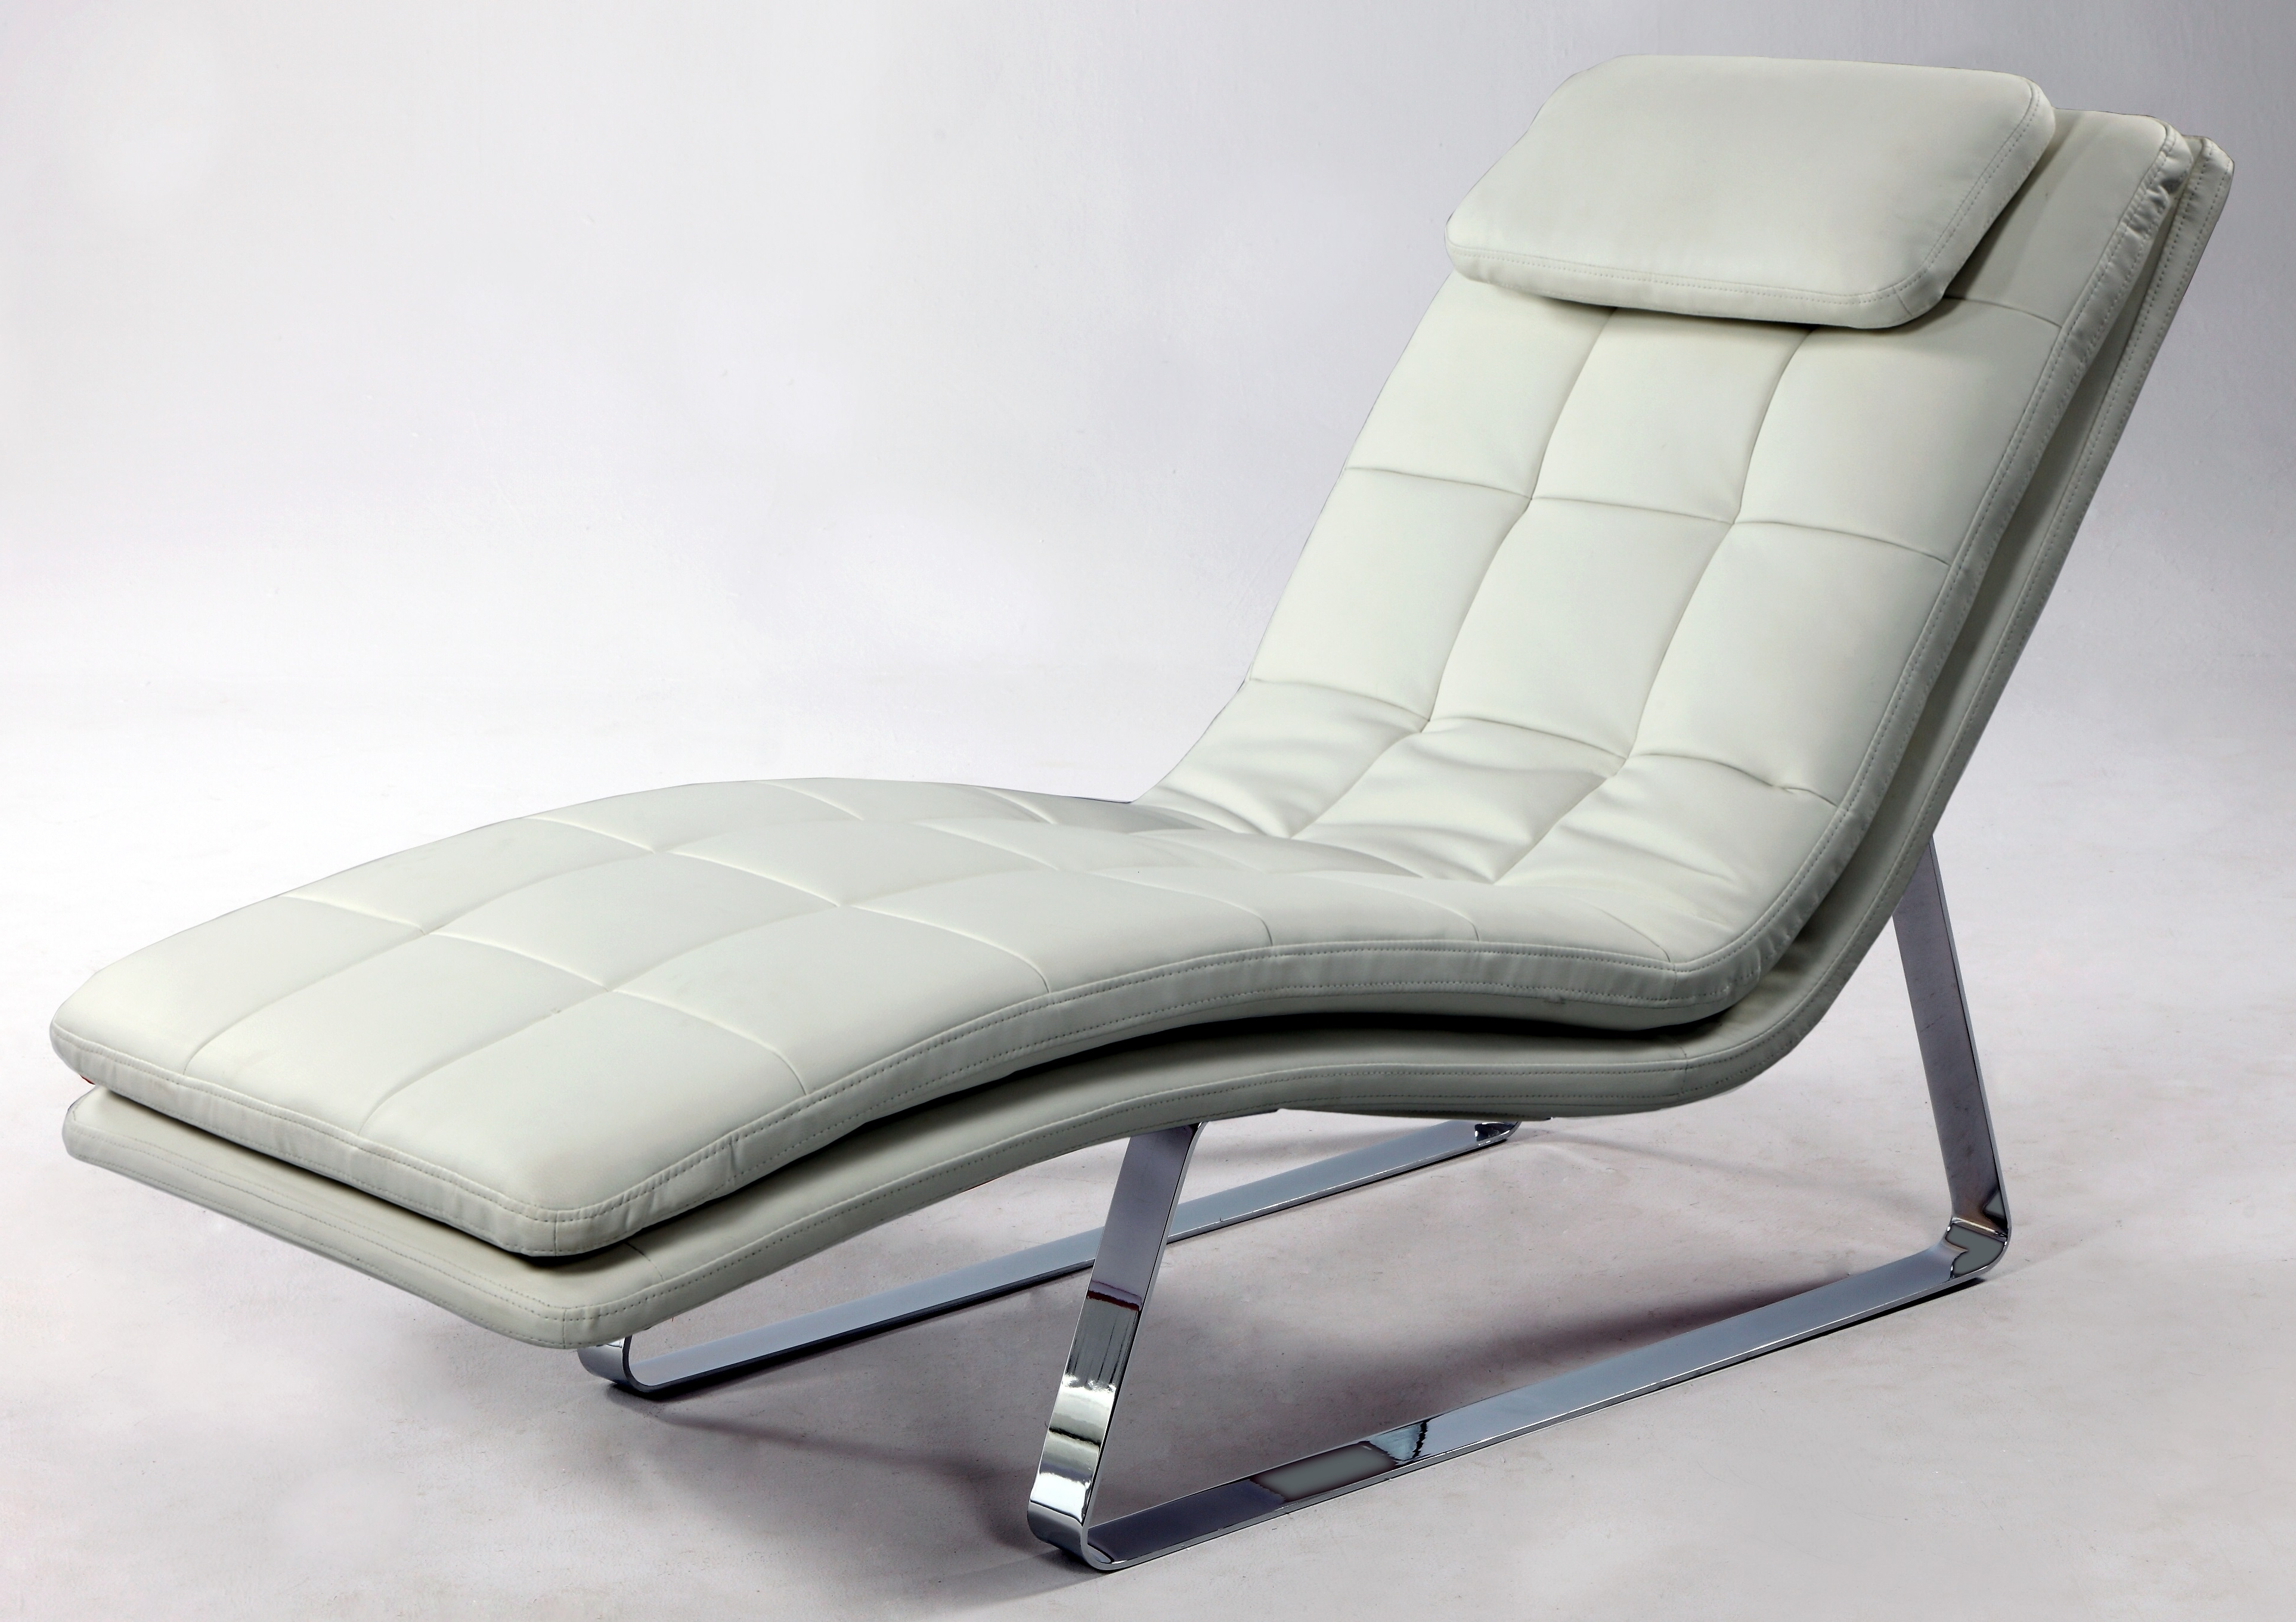 Leather Chaise Lounge Chairs Intended For Favorite Full Bonded Leather Tufted Chaise Lounge With Chrome Legs New York (View 10 of 15)